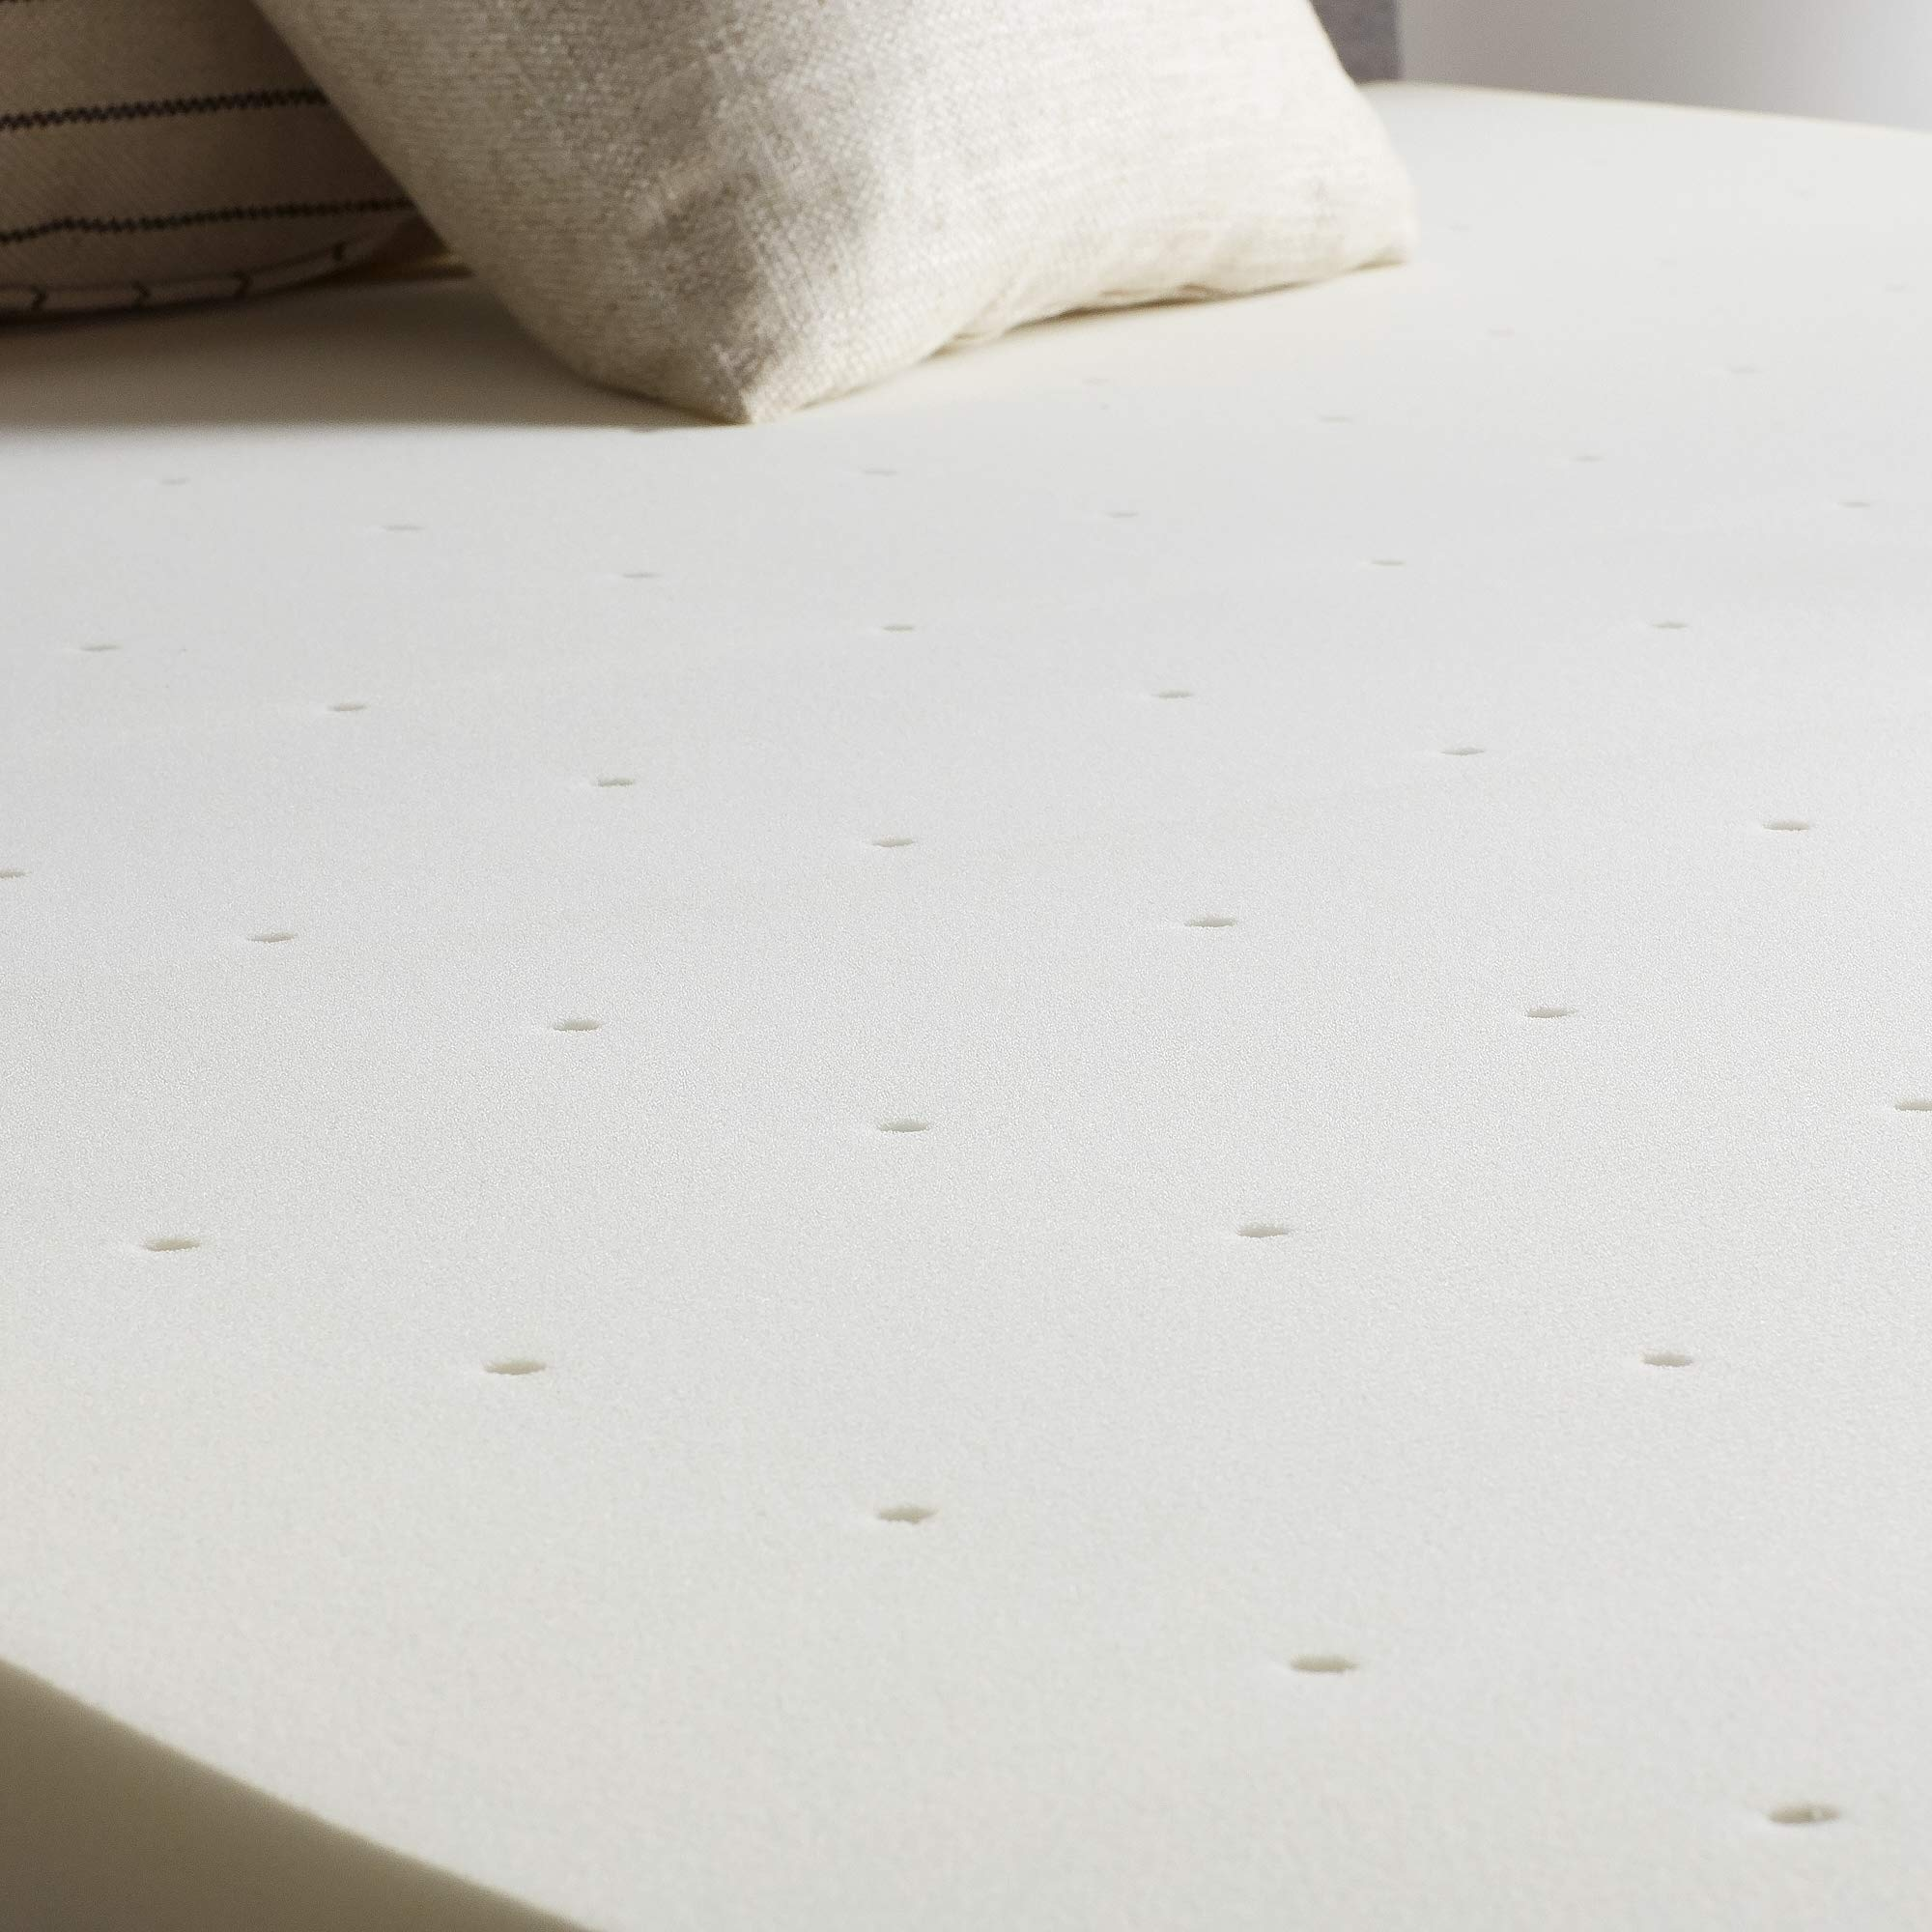 LUCID 2 Inch Traditional Foam Mattress Topper-Ventilated - Full, Ivory